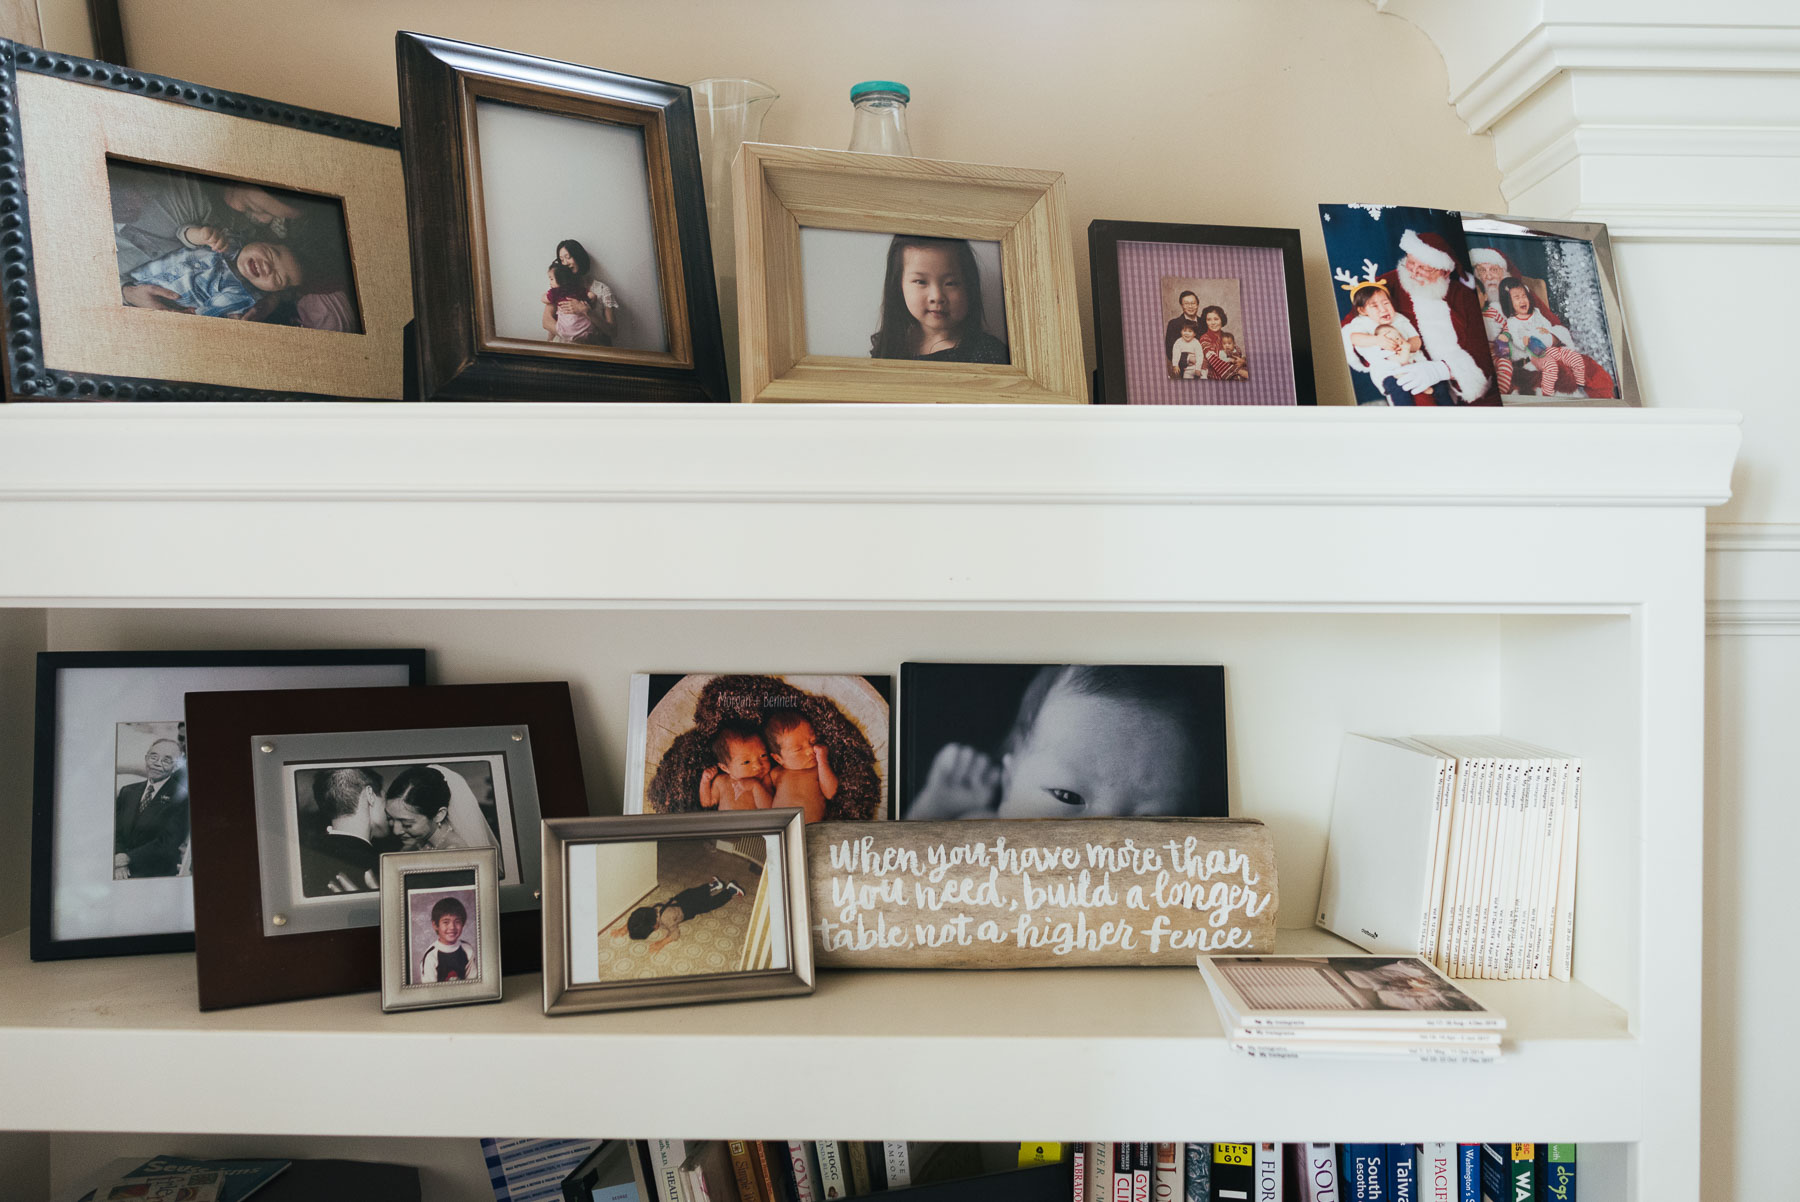 built-in bookshelf with framed photographs and photo books